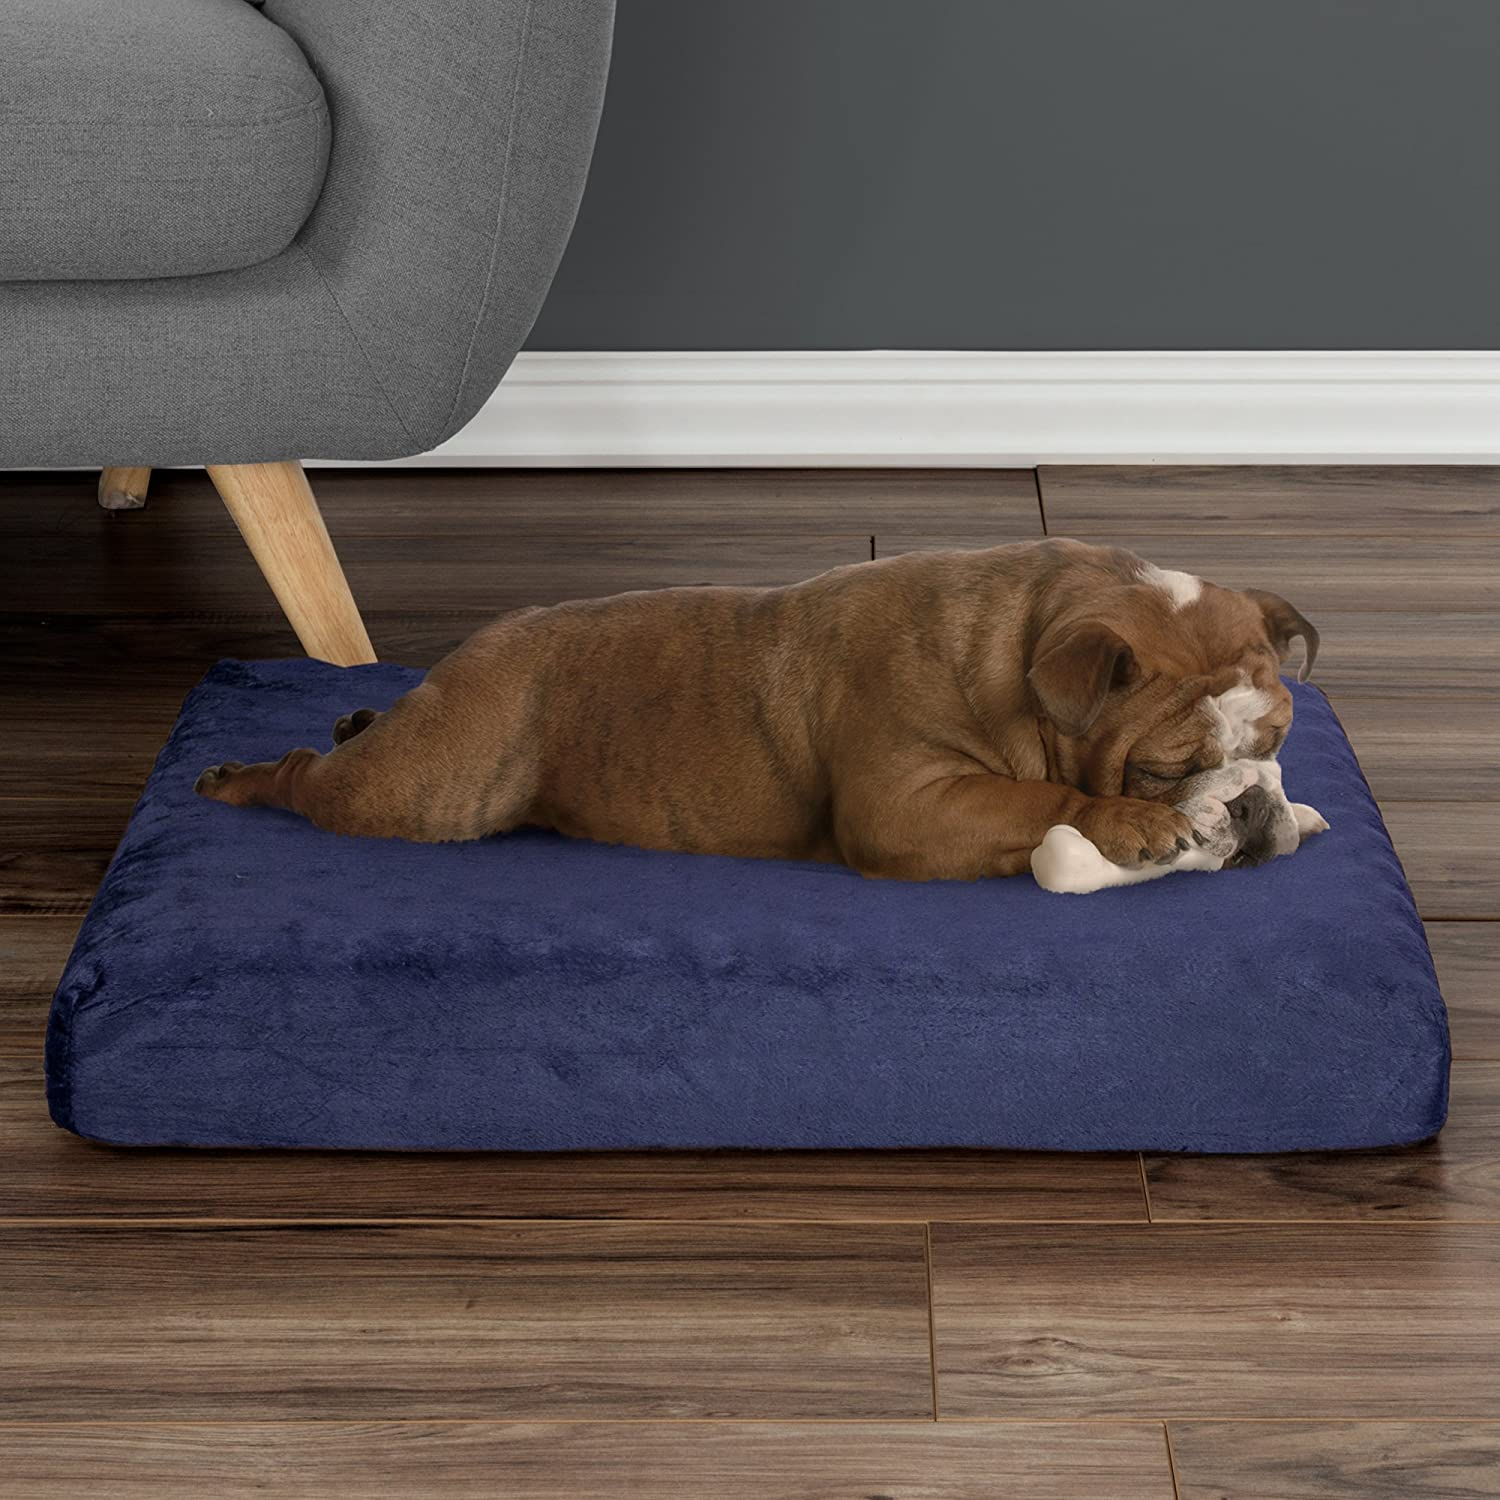 PETMAKER Orthopedic Pet BedEgg Crate and Memory Foam with Washable Cover, Medium, Navy(80PET6004)